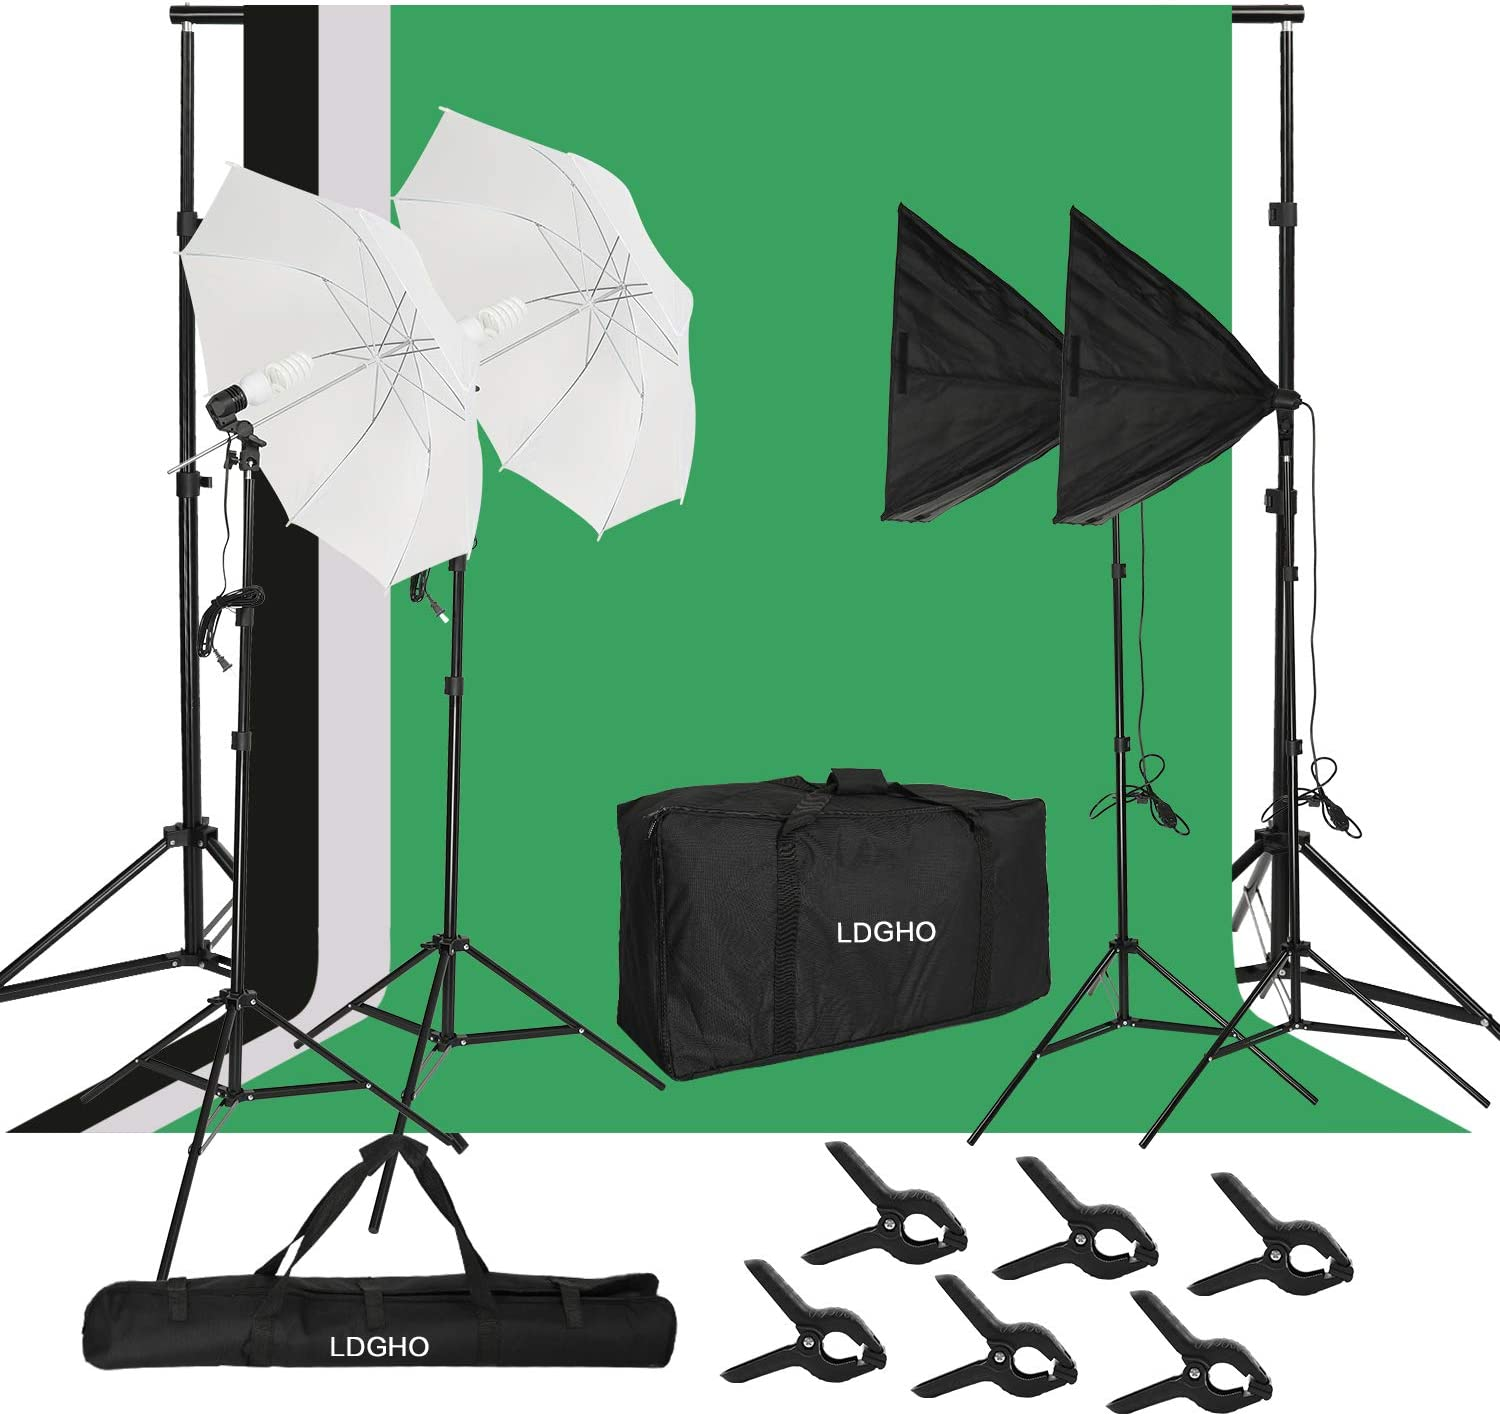 2.6M x 3M/8.5FT x 10FT Background Support System with 5500K Umbrellas Softbox Continuous Lighting Kit for Photo Studio Product and Video Shoot Photography